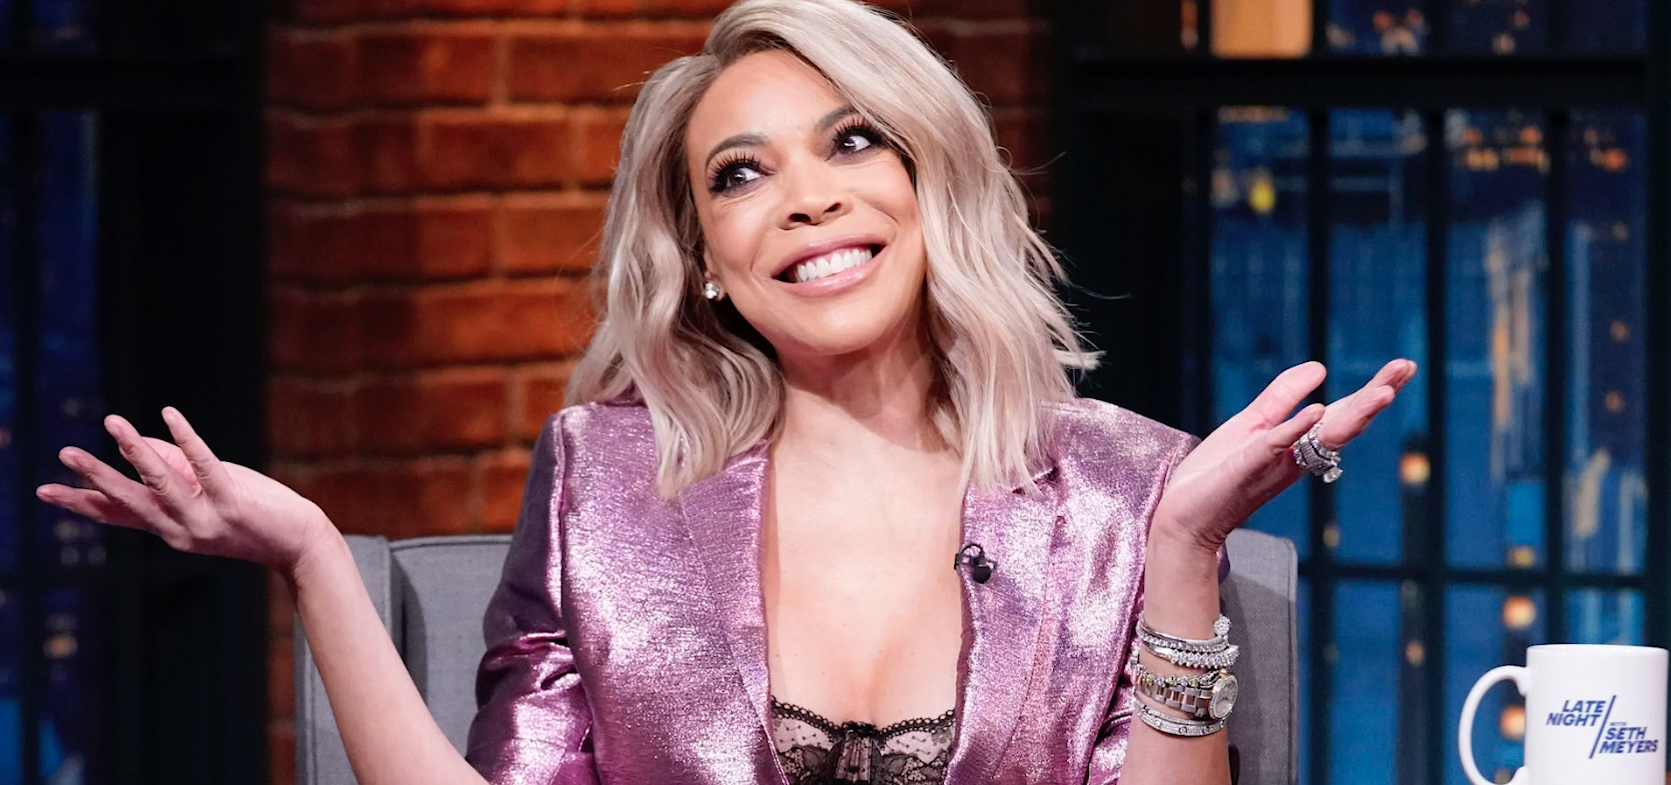 Wendy Williams shades Aubrey ODay for plastic surgery: What did she used to look like?